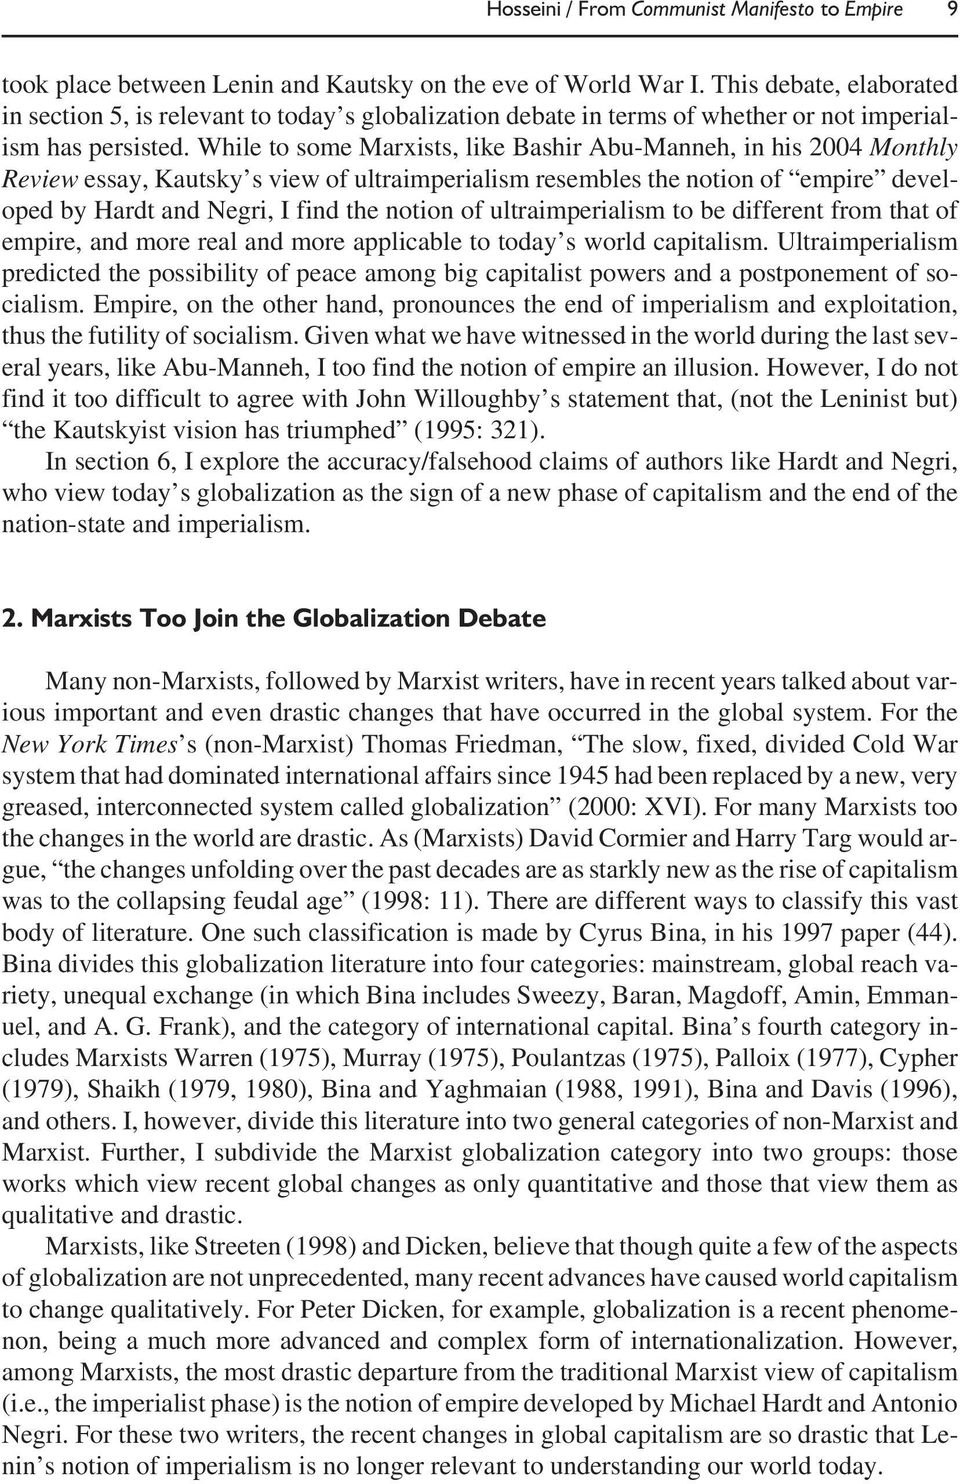 While to some Marxists, like Bashir Abu-Manneh, in his 2004 Monthly Review essay, Kautsky s view of ultraimperialism resembles the notion of empire developed by Hardt and Negri, I find the notion of